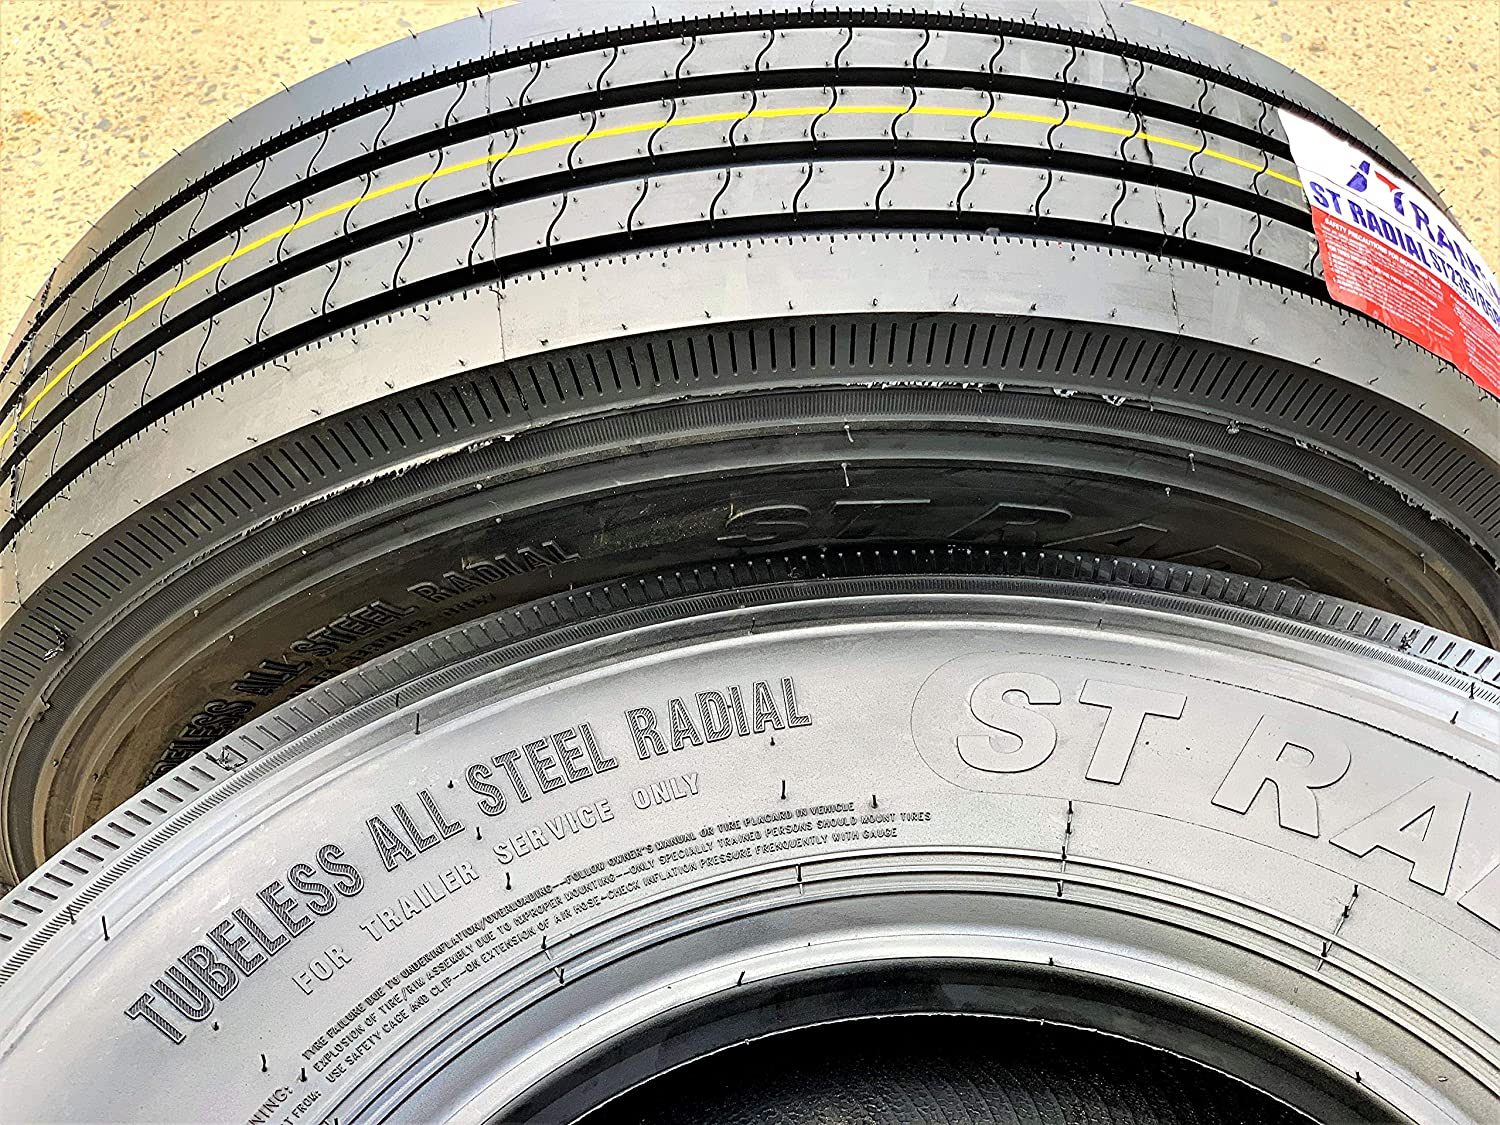 Transeagle ST Radial All Steel Heavy Duty Premium Trailer Tire-ST235/80R16 129/125M LRG 14-Ply